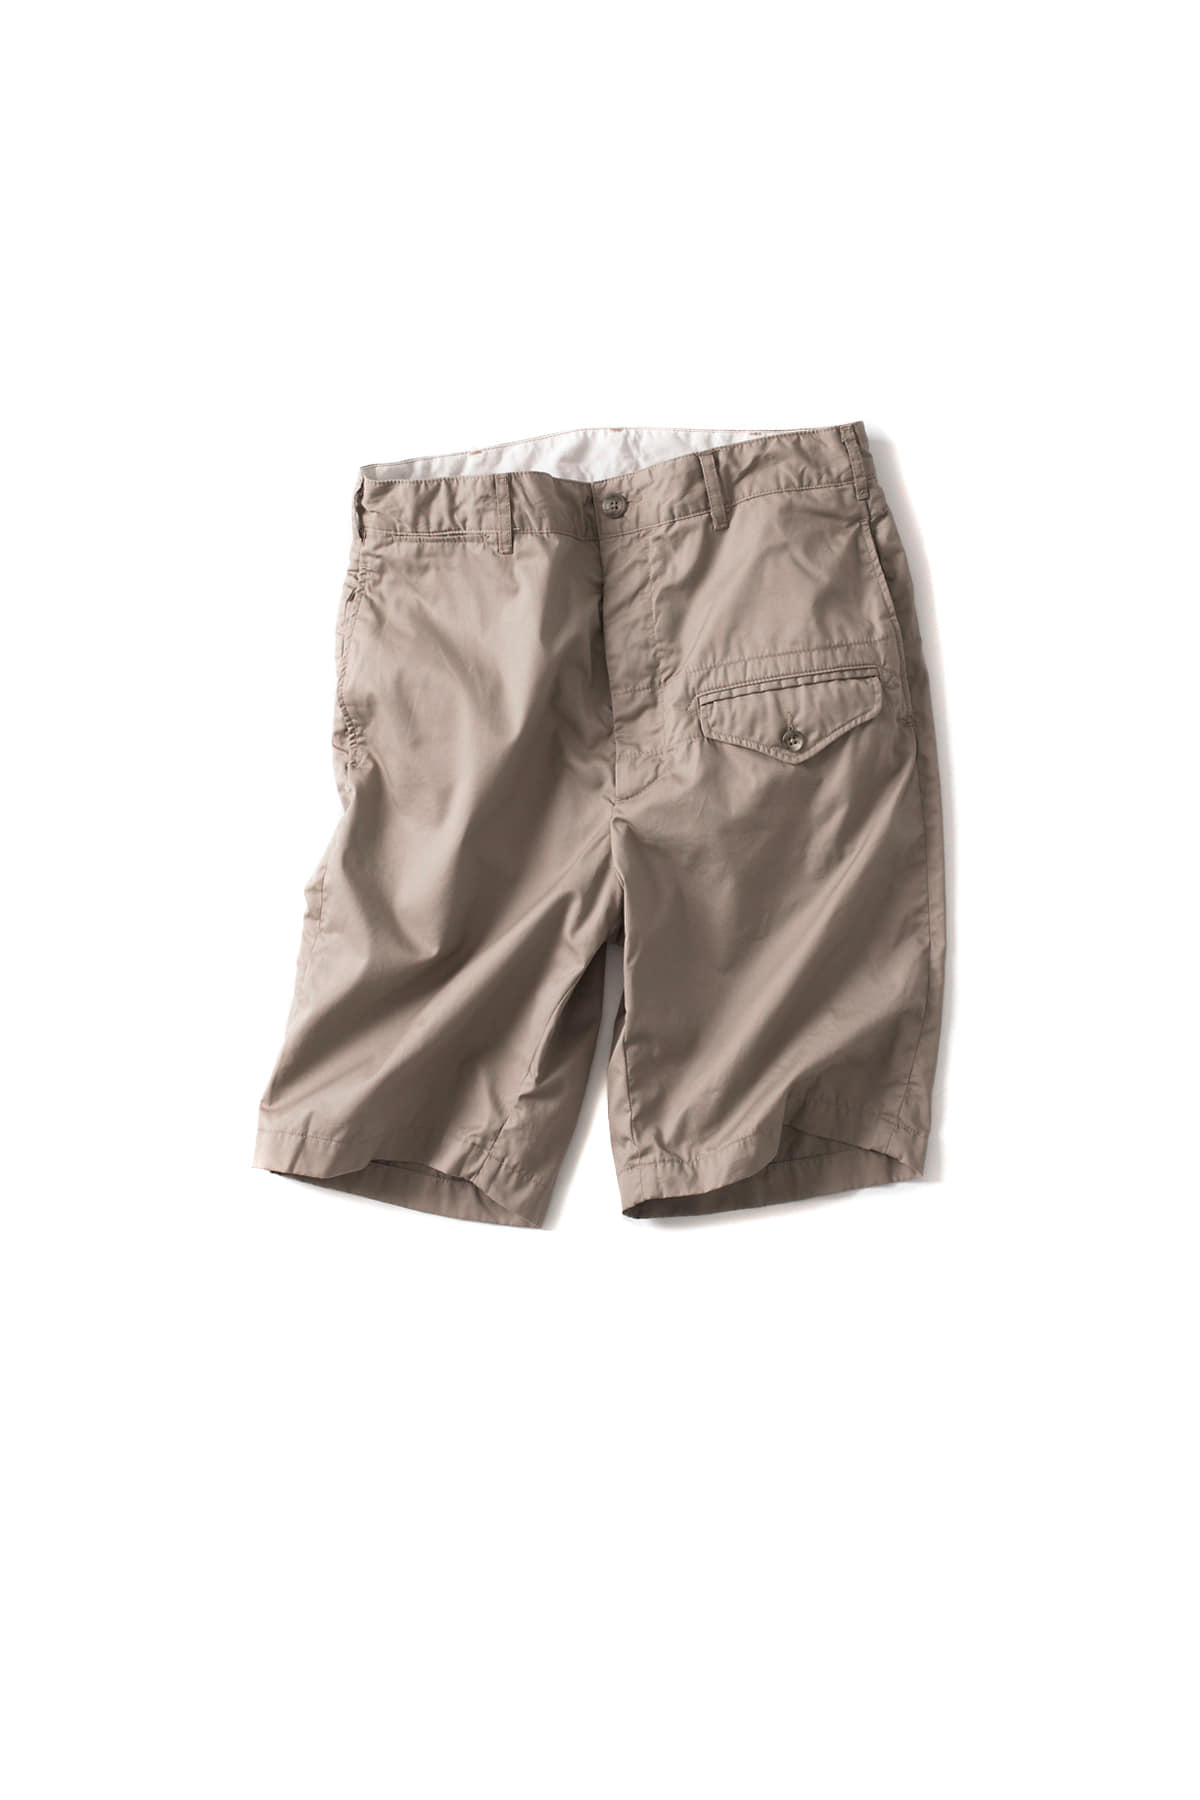 Engineered Garments : Ghurka Short (Khaki High Count Twill)